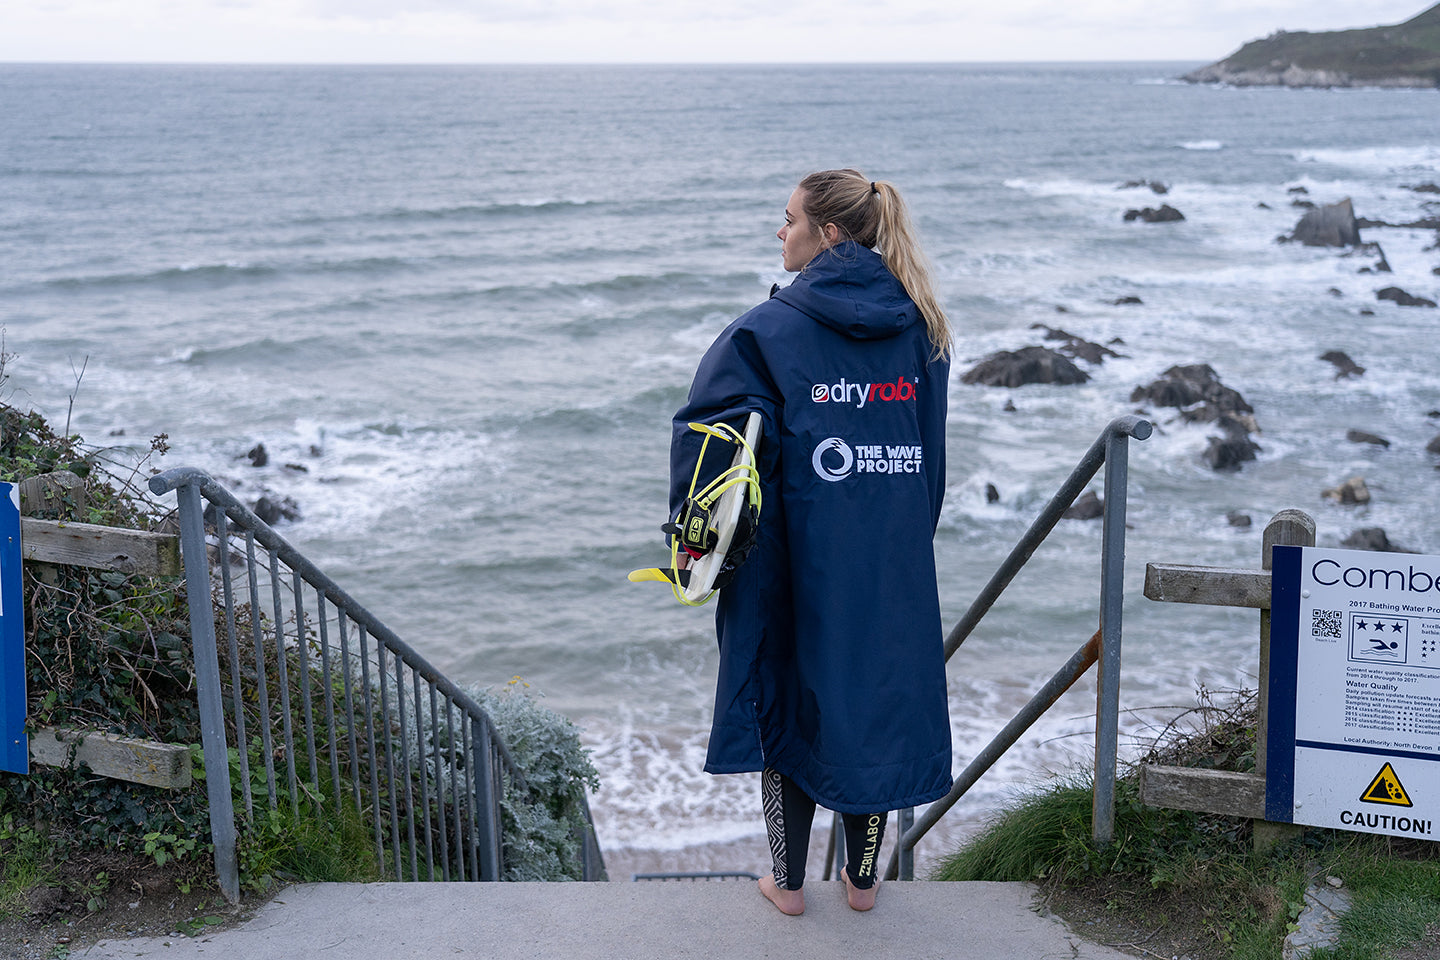 The Wave project branded dryrobe